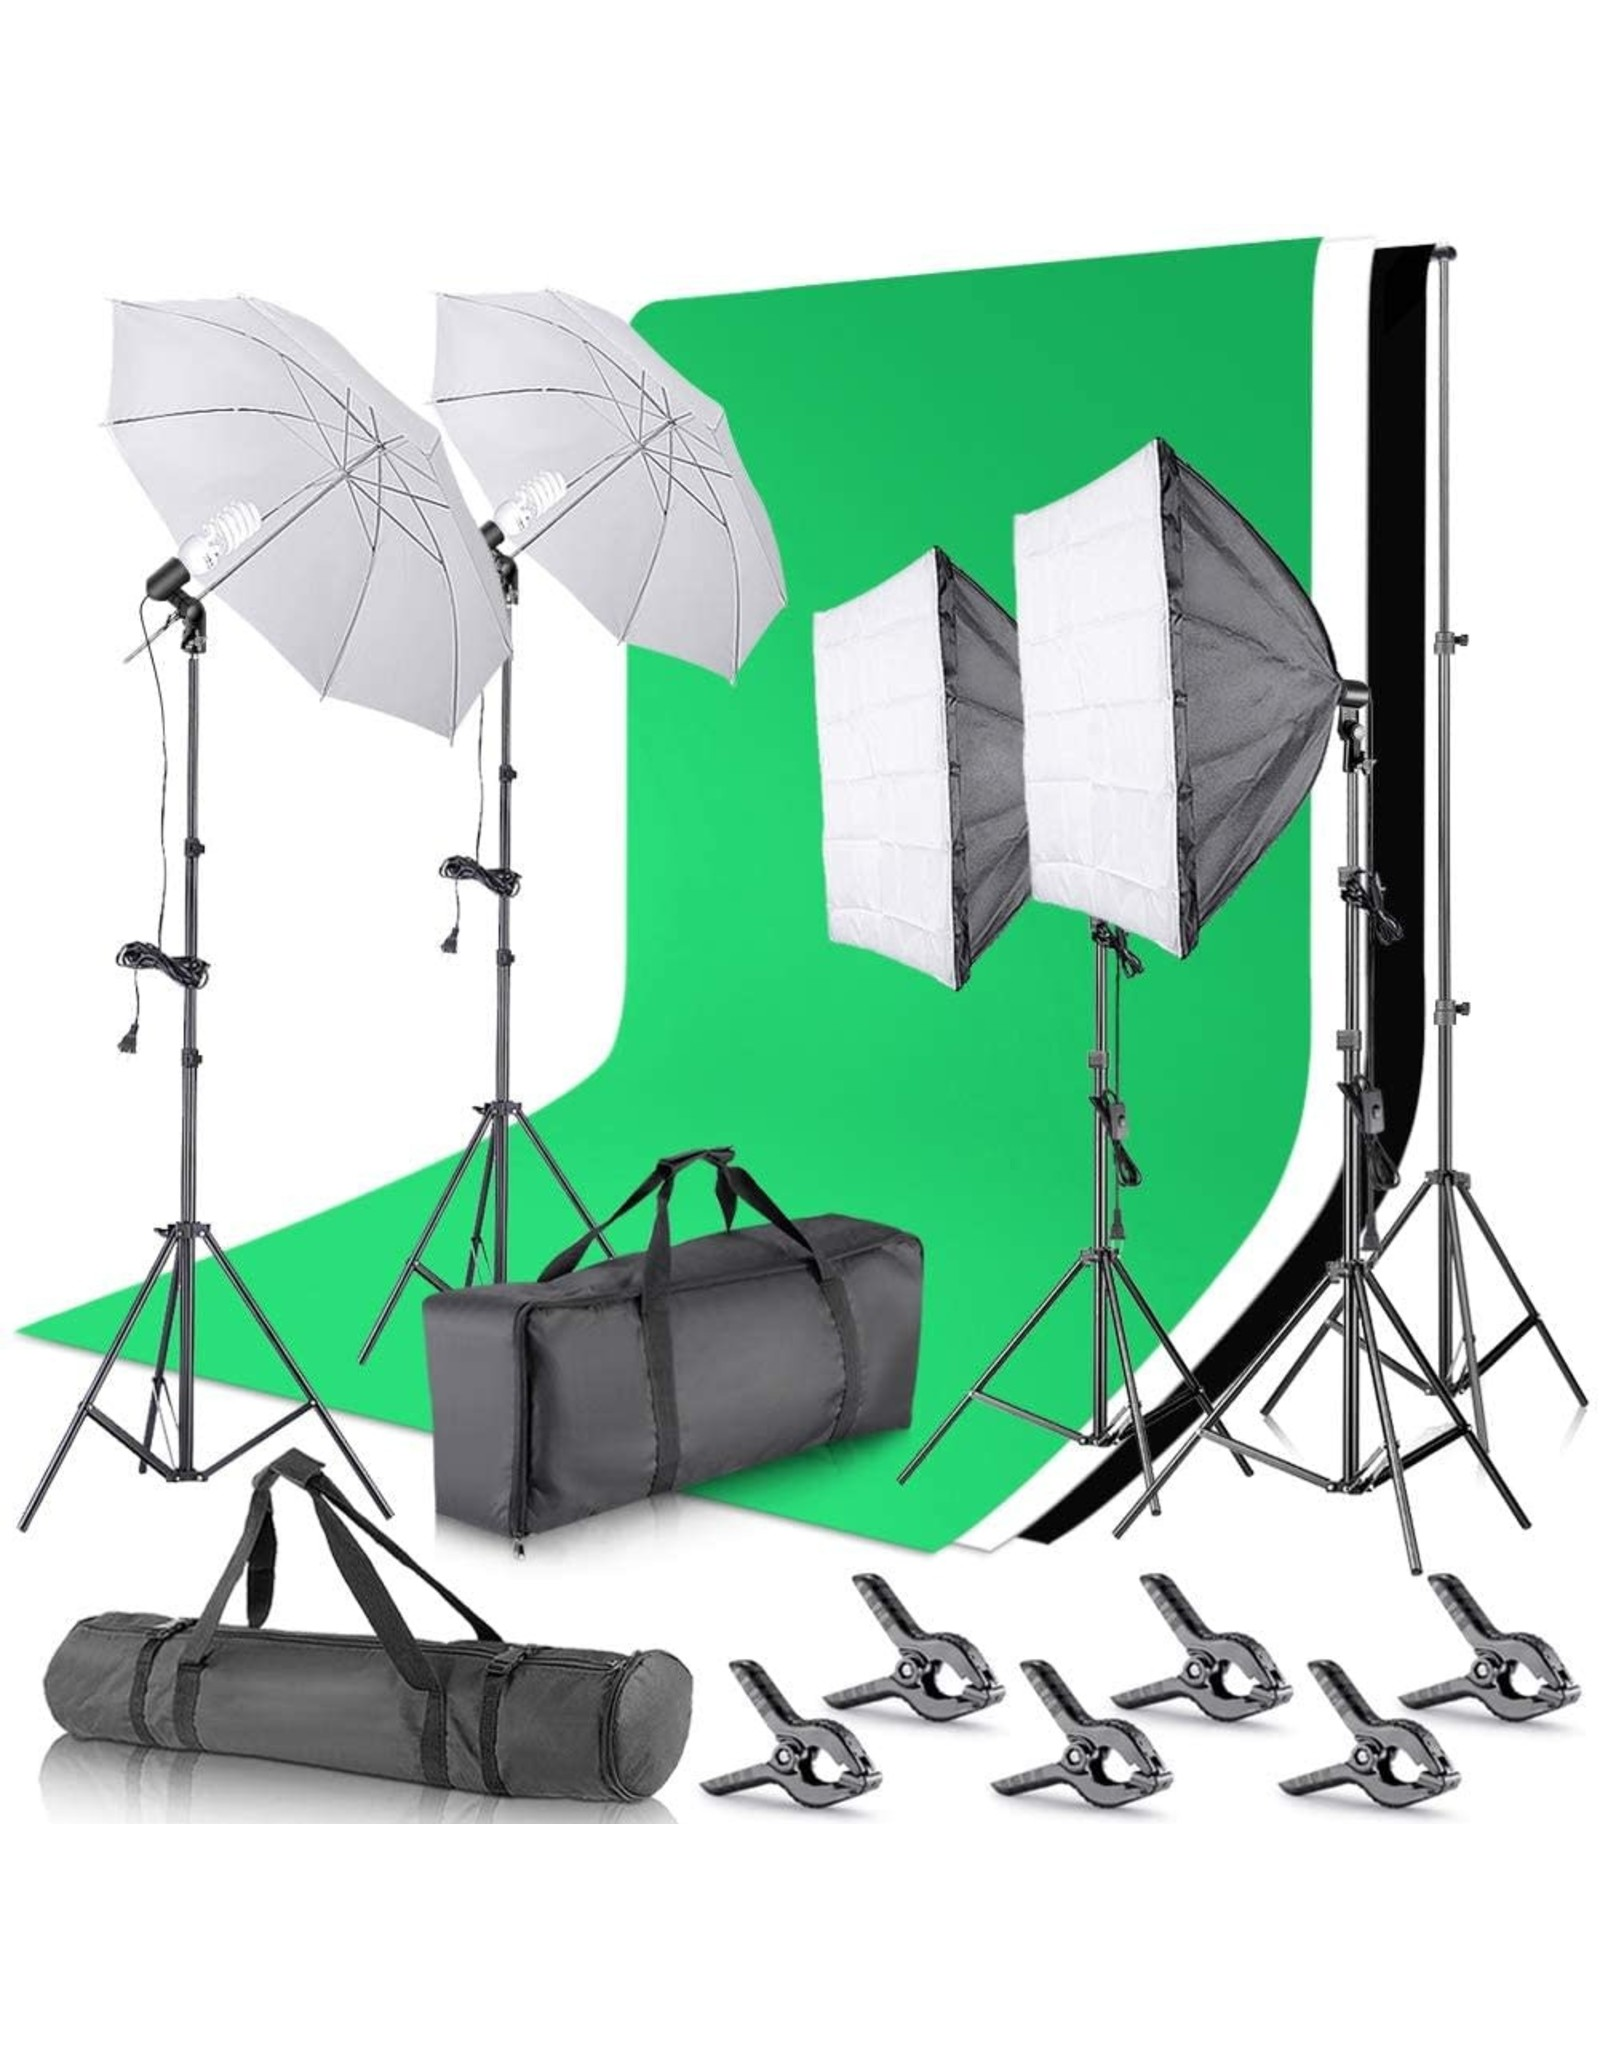 Neewer Neewer 2.6M x 3M/8.5ft x 10ft Background Support System and 800W 5500K Umbrellas Softbox Continuous Lighting Kit for Photo Studio Product,Portrait and Video Shoot Photography